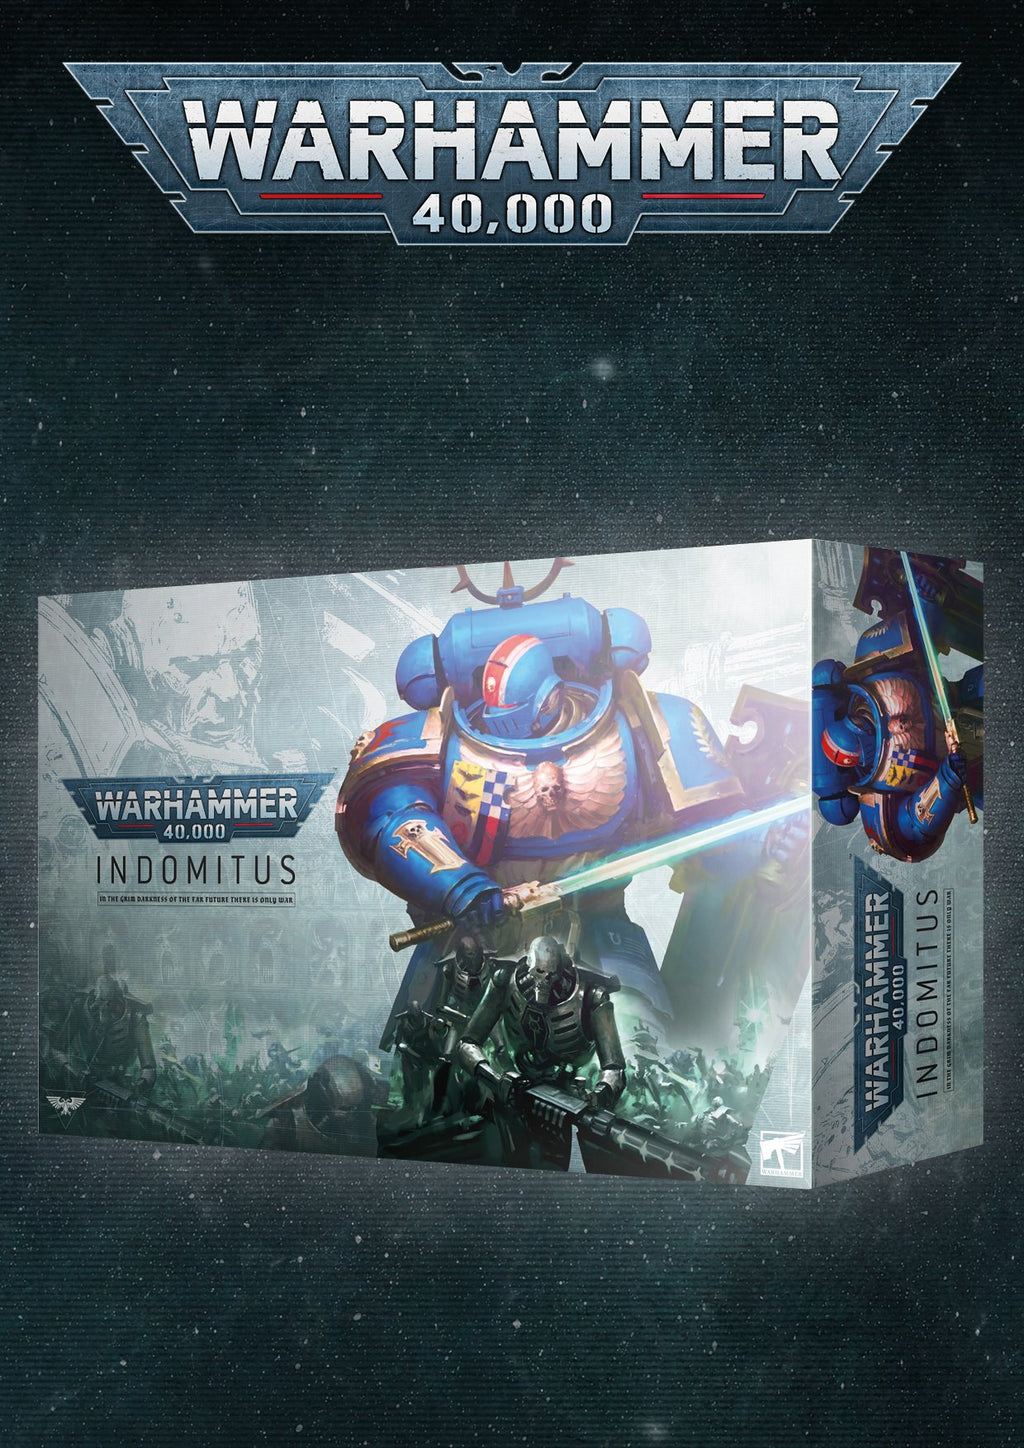 WARHAMMER 40000: INDOMITUS (ENGLISH) (PREORDER, SHIPS TO YOU OR READY FOR PICK-UP on 7/25)